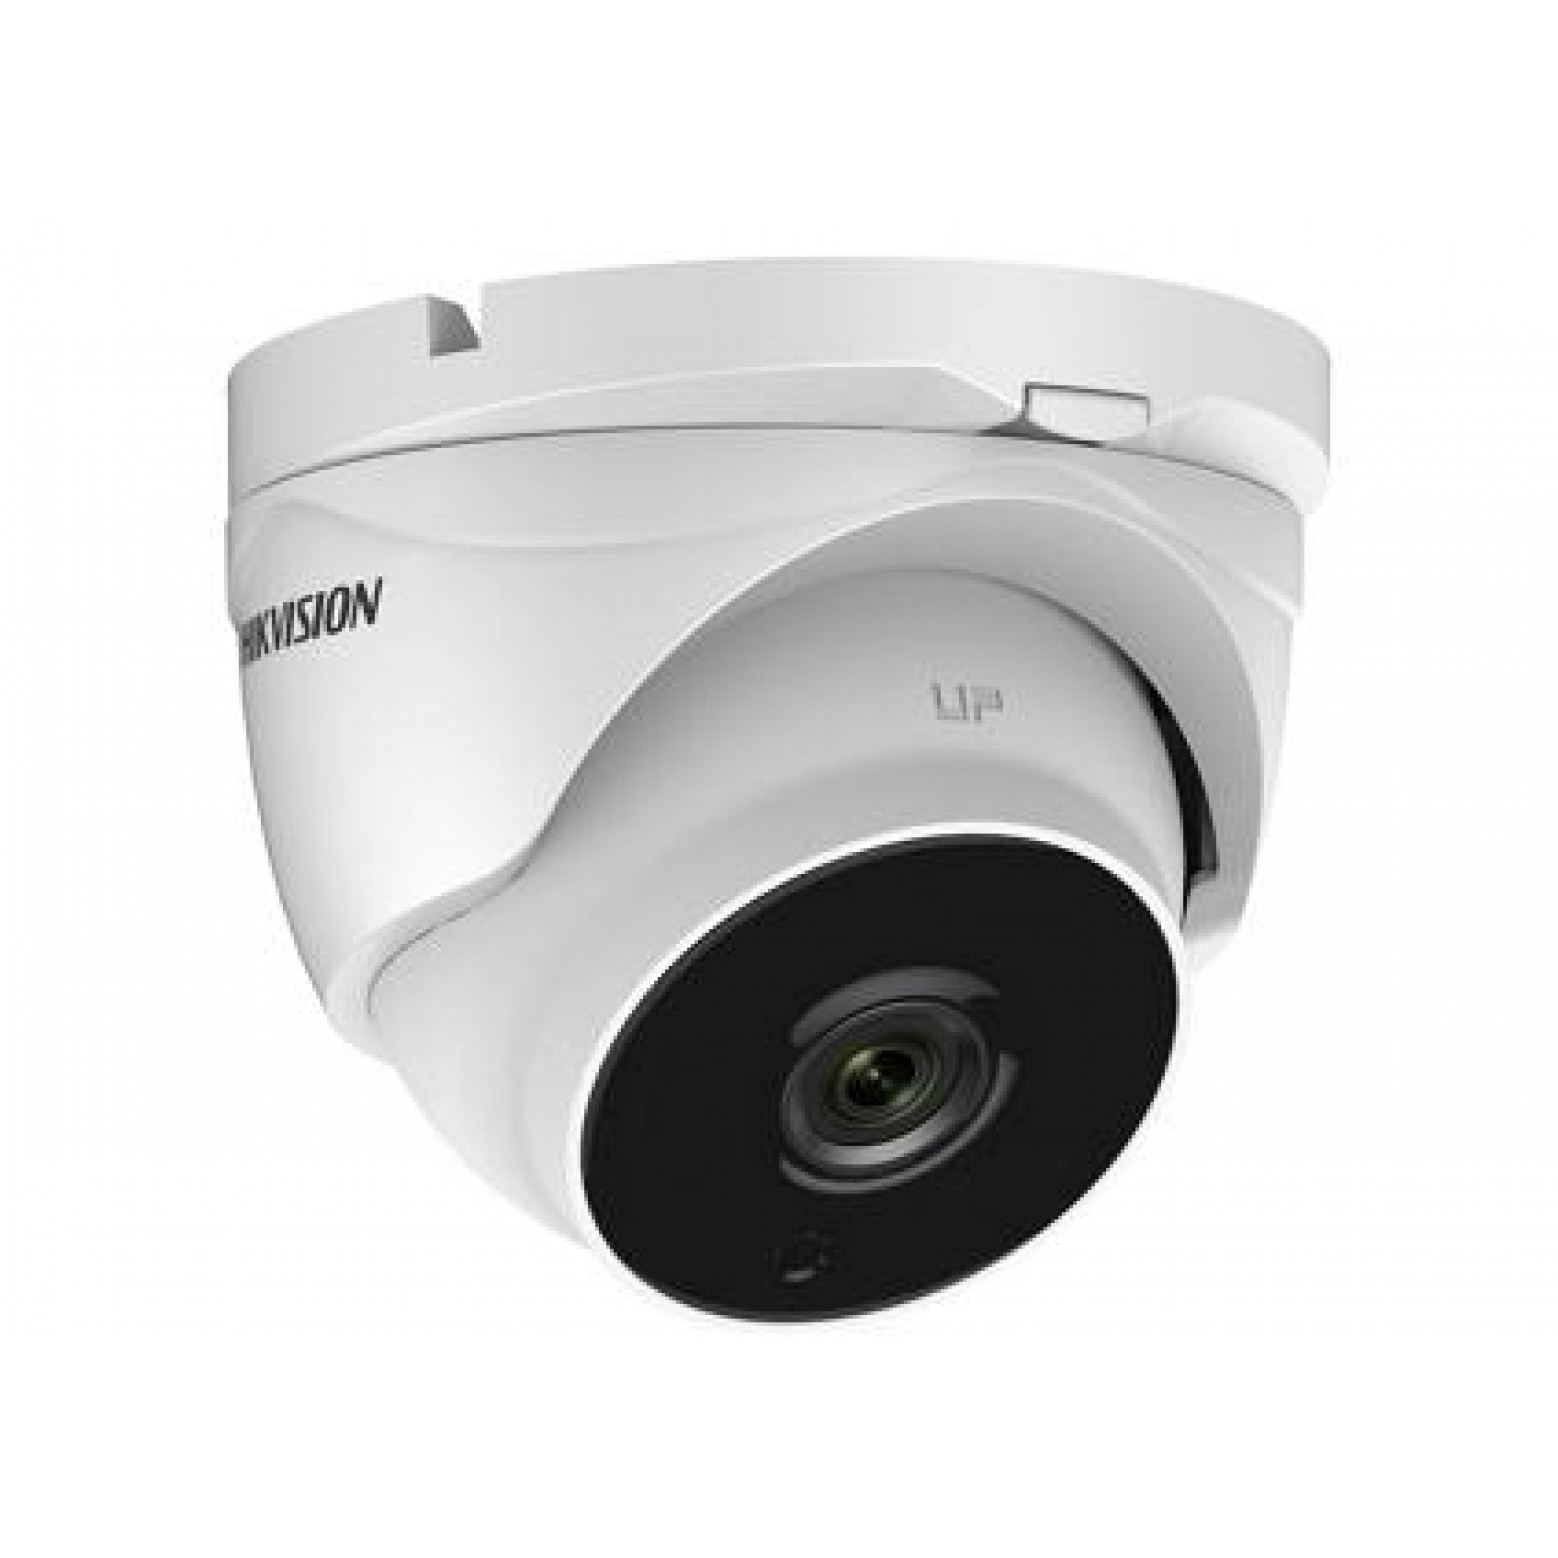 Hikvision DS-2CE56D8T-IT3E Ultra Low Light, 2,8mm, 40m IR